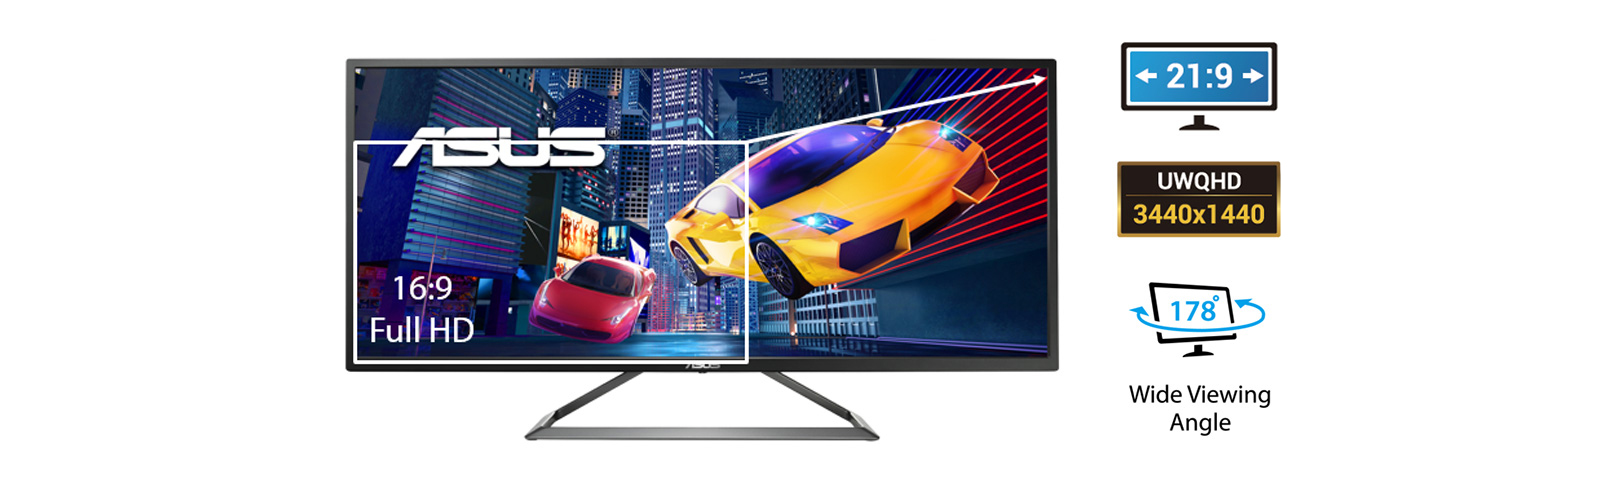 Asus unveils a 34-inch UWQHD gaming monitor with 75 Hz refresh rate